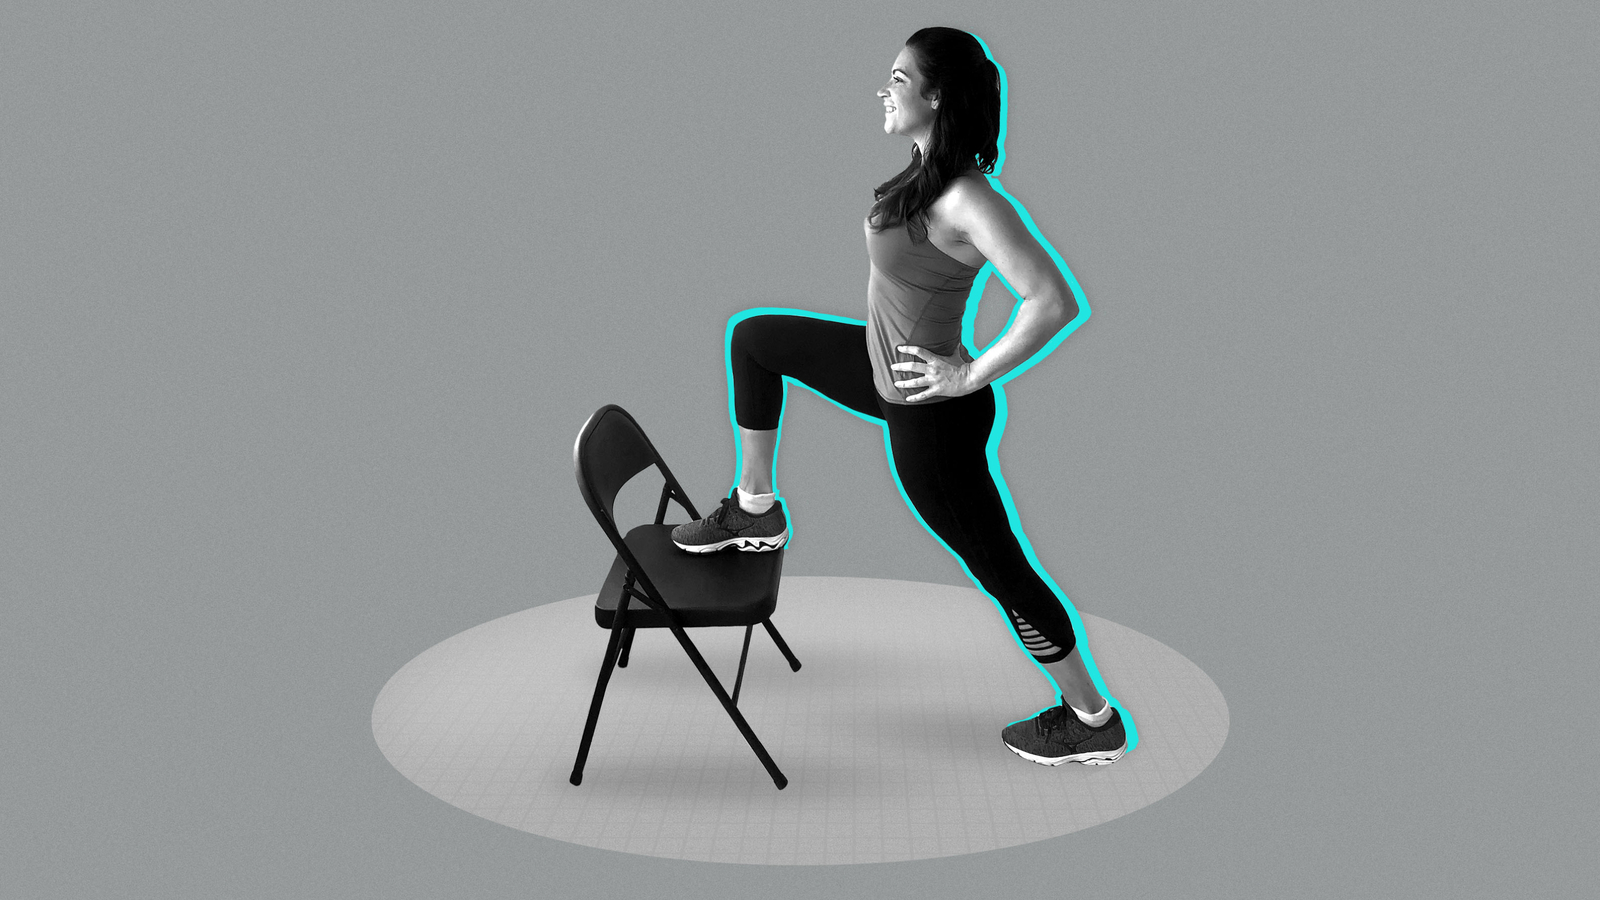 This 5-minute midday workout will get you out of your chair